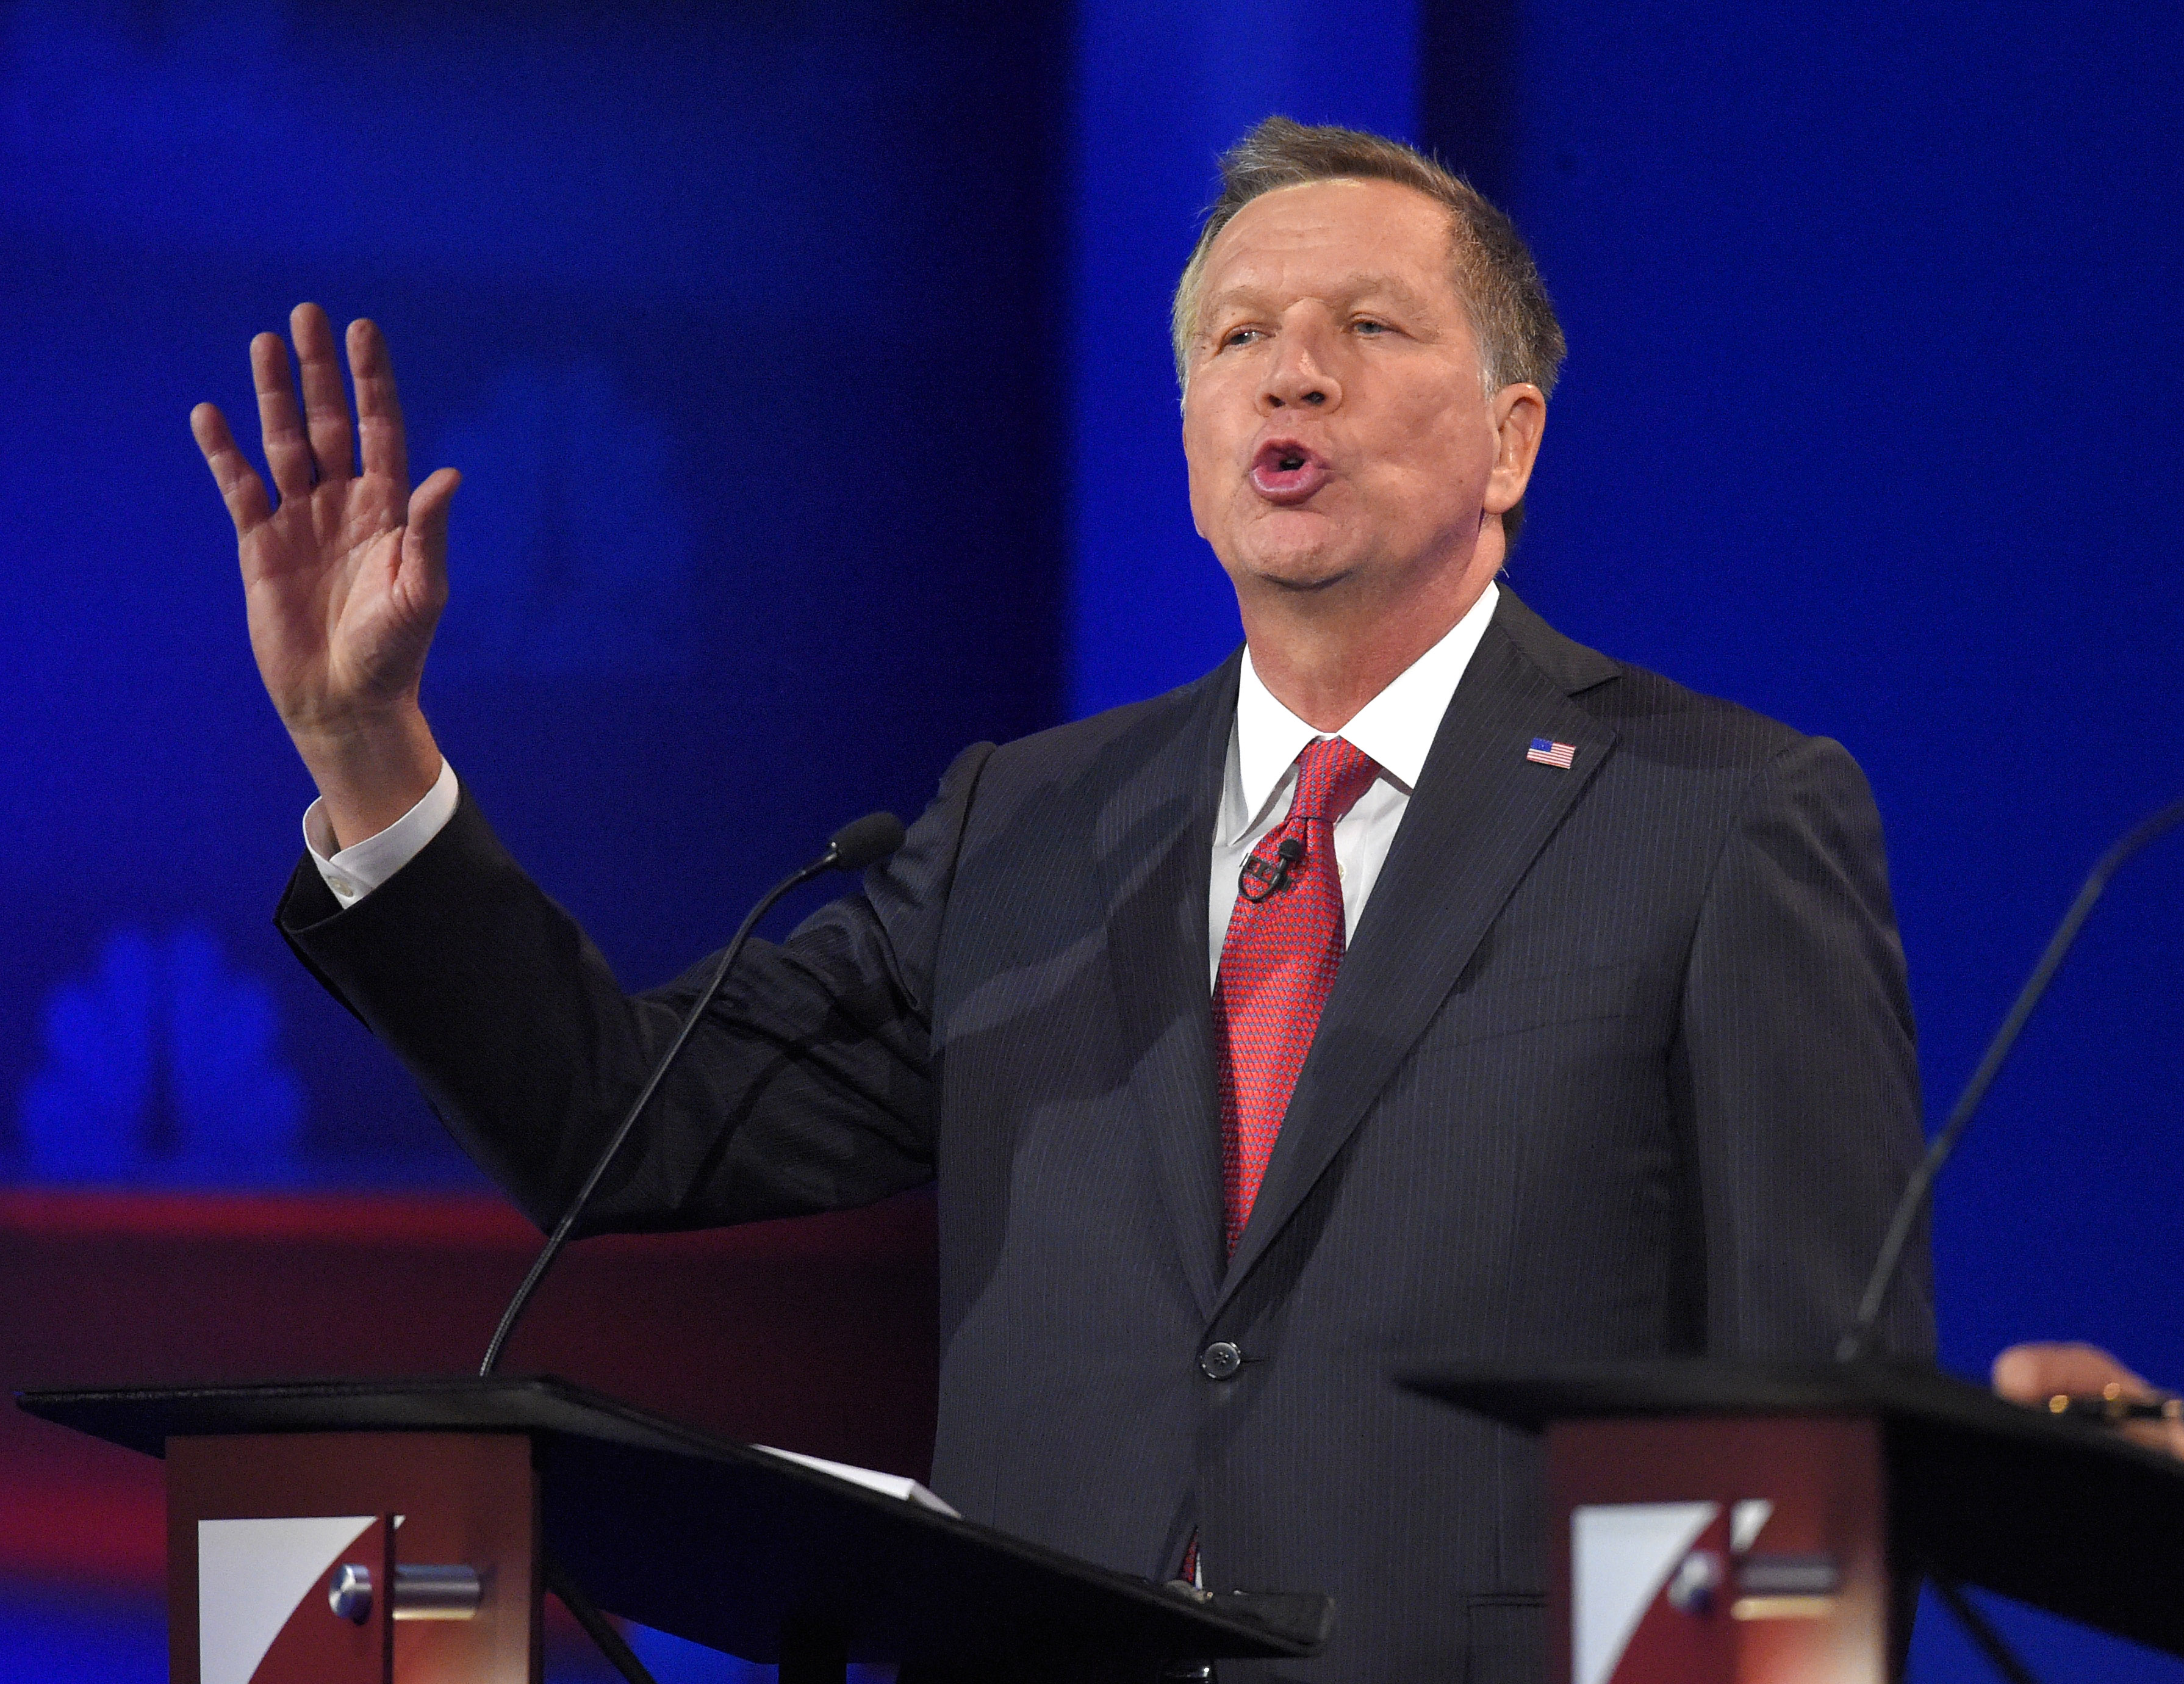 John Kasich makes a point during the CNBC Republican presidential debate at the University of Colorado, Wednesday, Oct. 28, 2015.